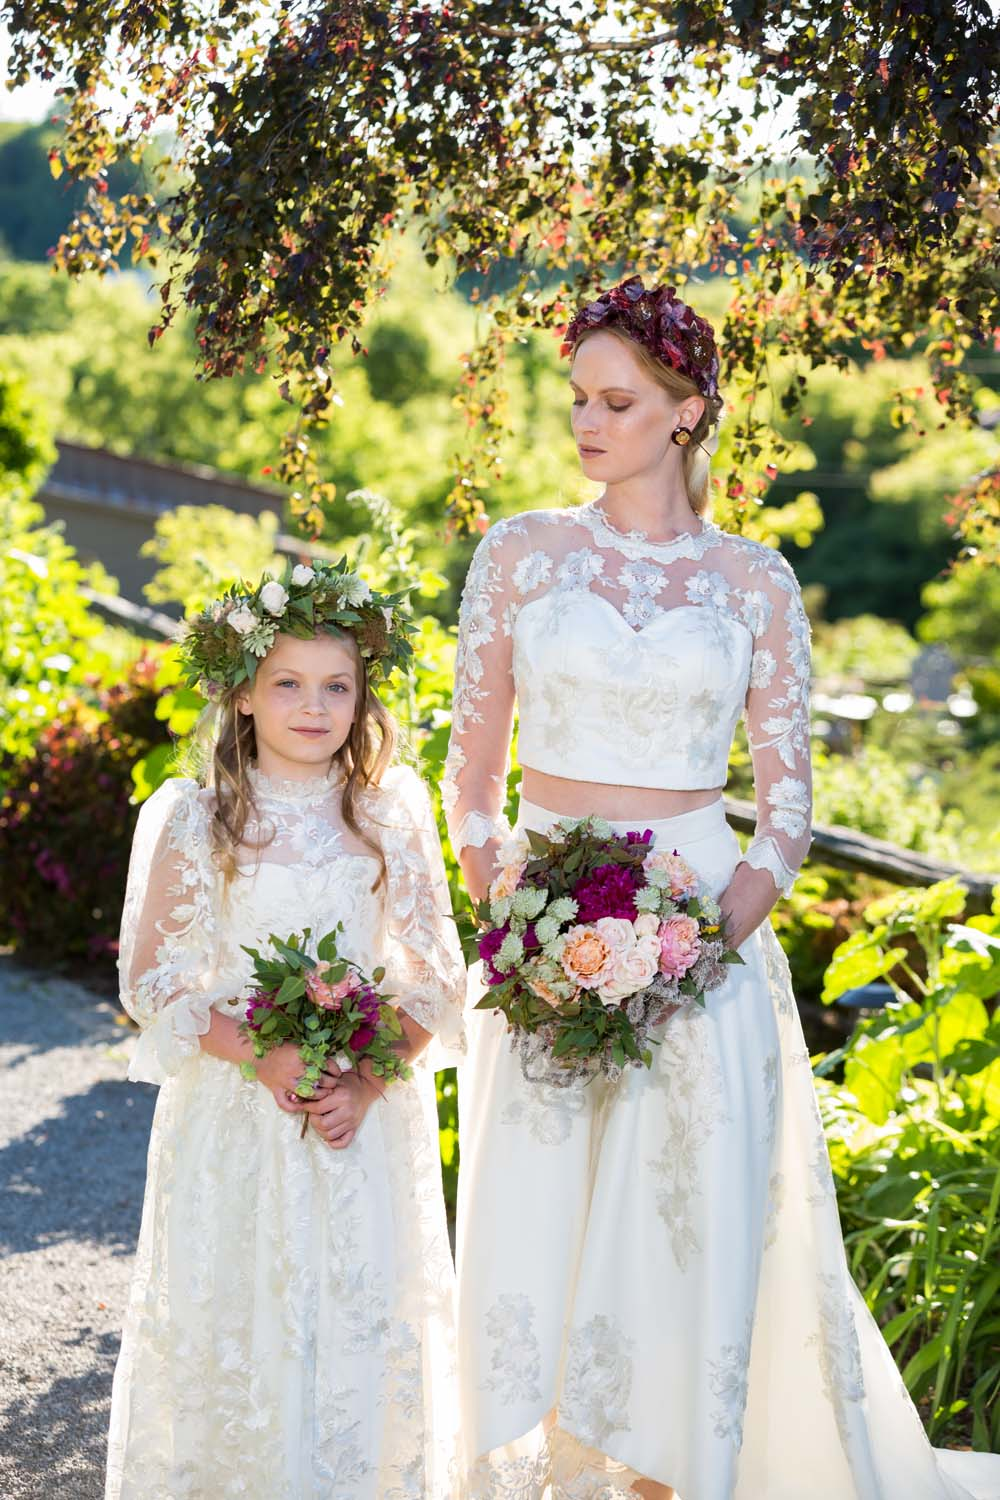 This Styled Shoot Was Inspired By Medieval Royalty - Bride and flower girl